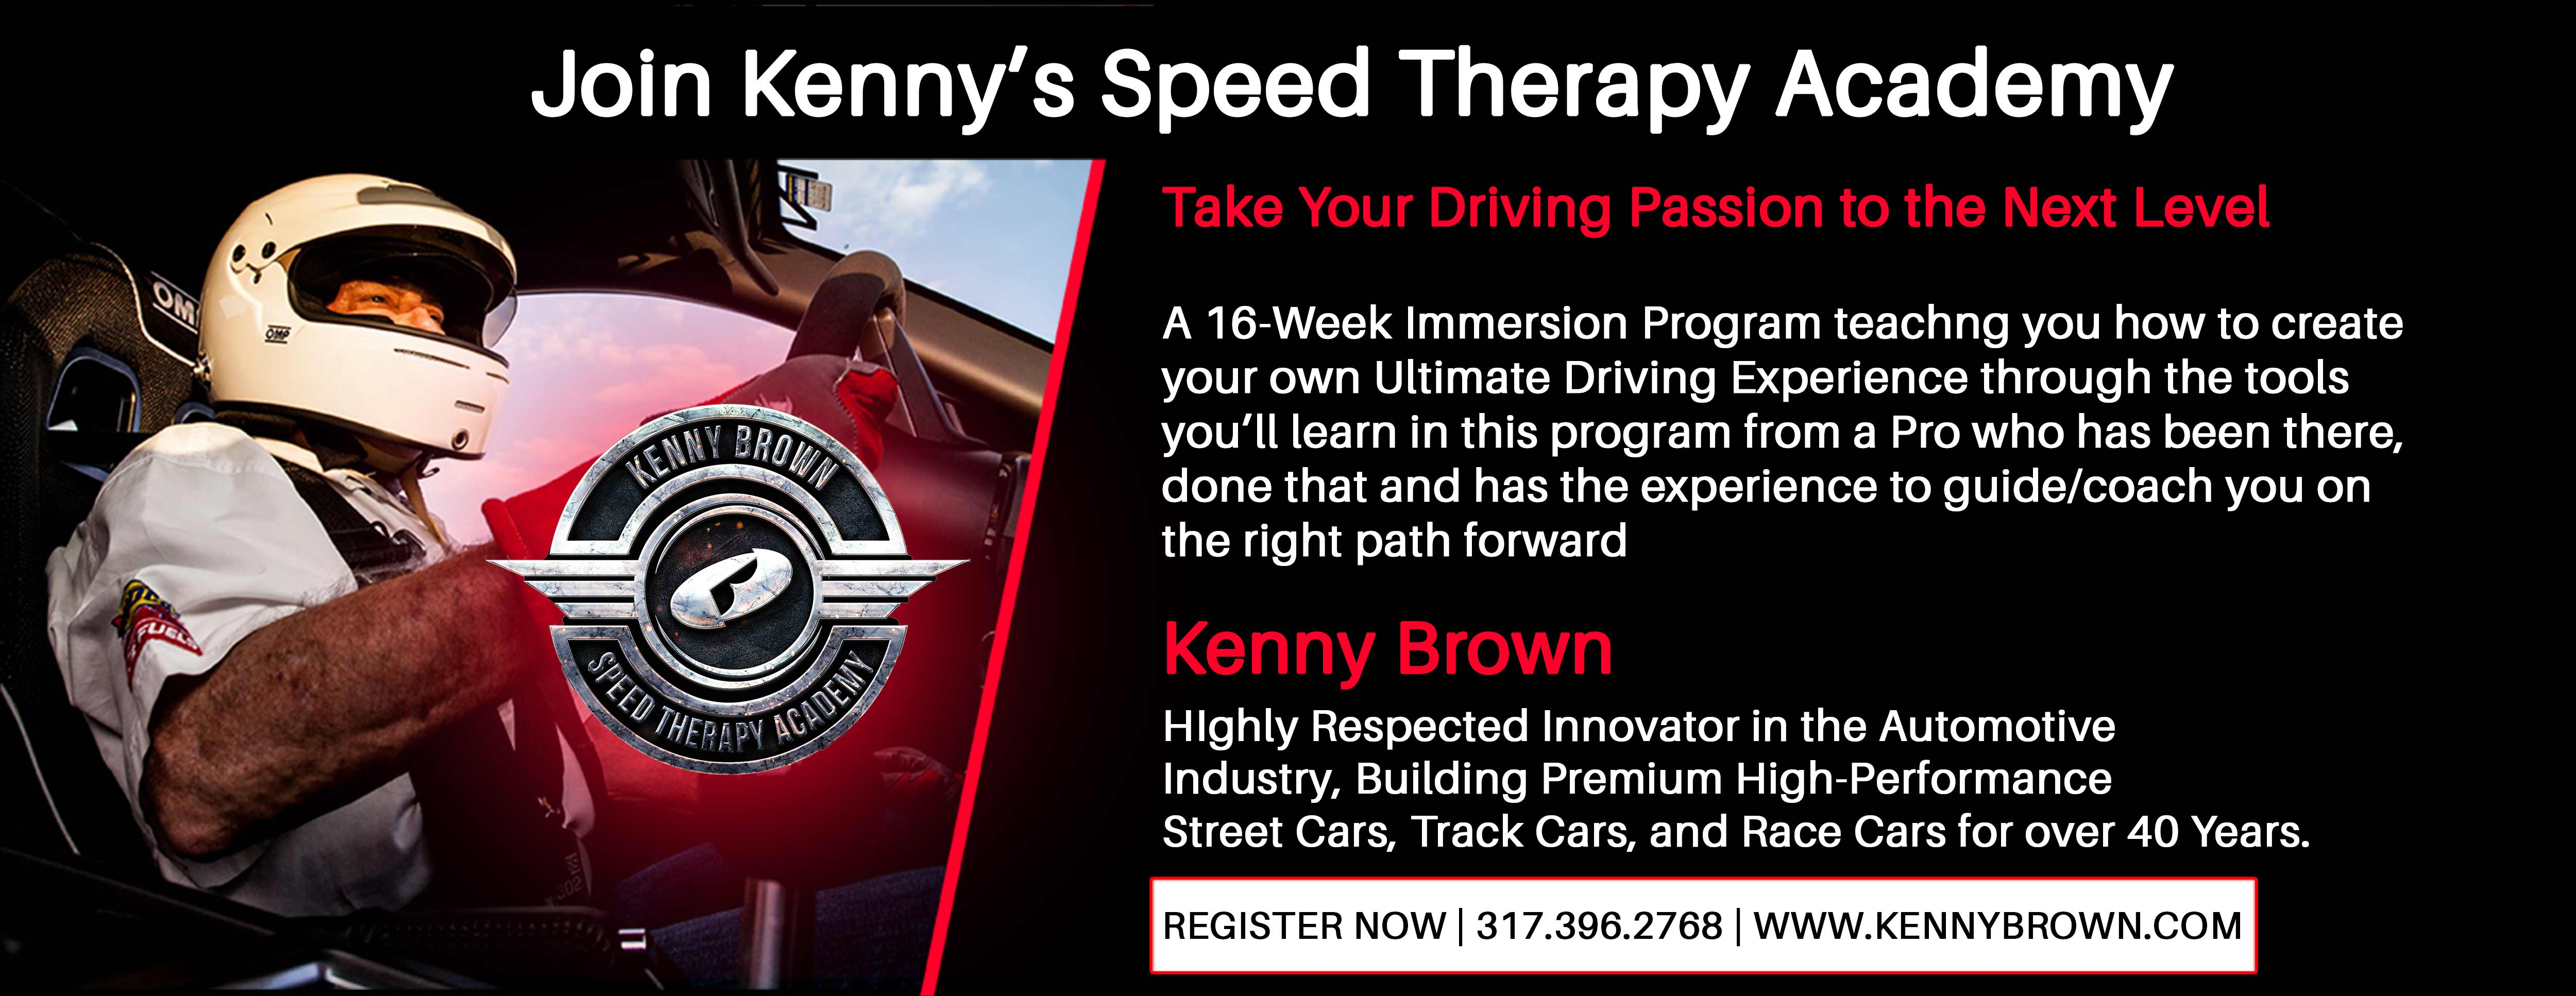 Kenny Brown Speed Therapy Academy